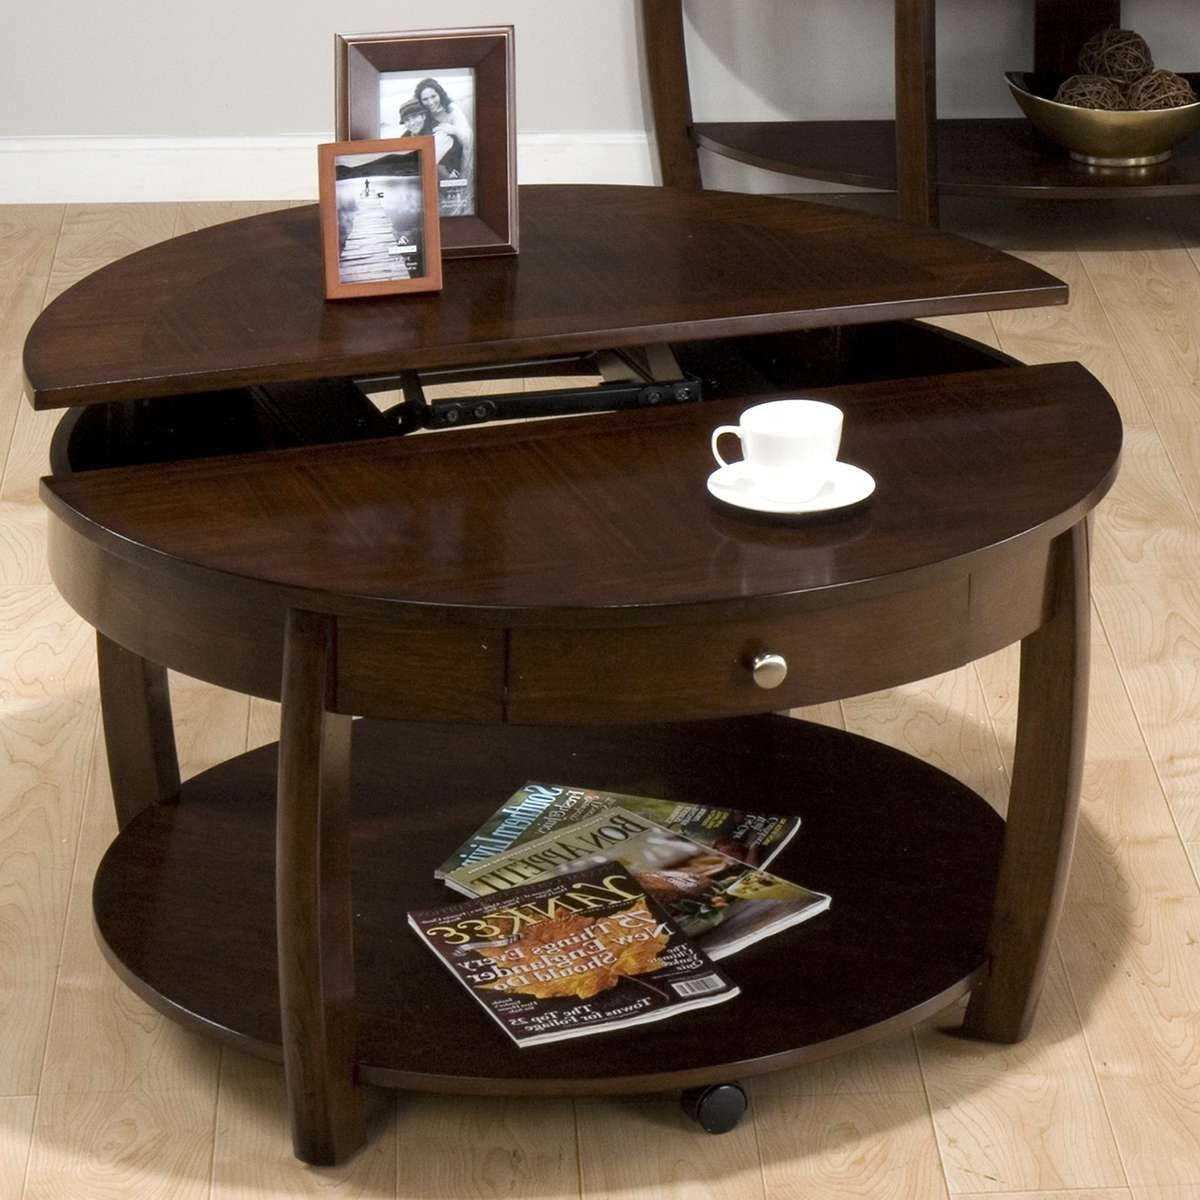 Most Recent Coffee Tables With Lift Top And Storage With Coffee Tables Ideas: Coffee Table With Lift Top And Storage Lift (View 14 of 20)